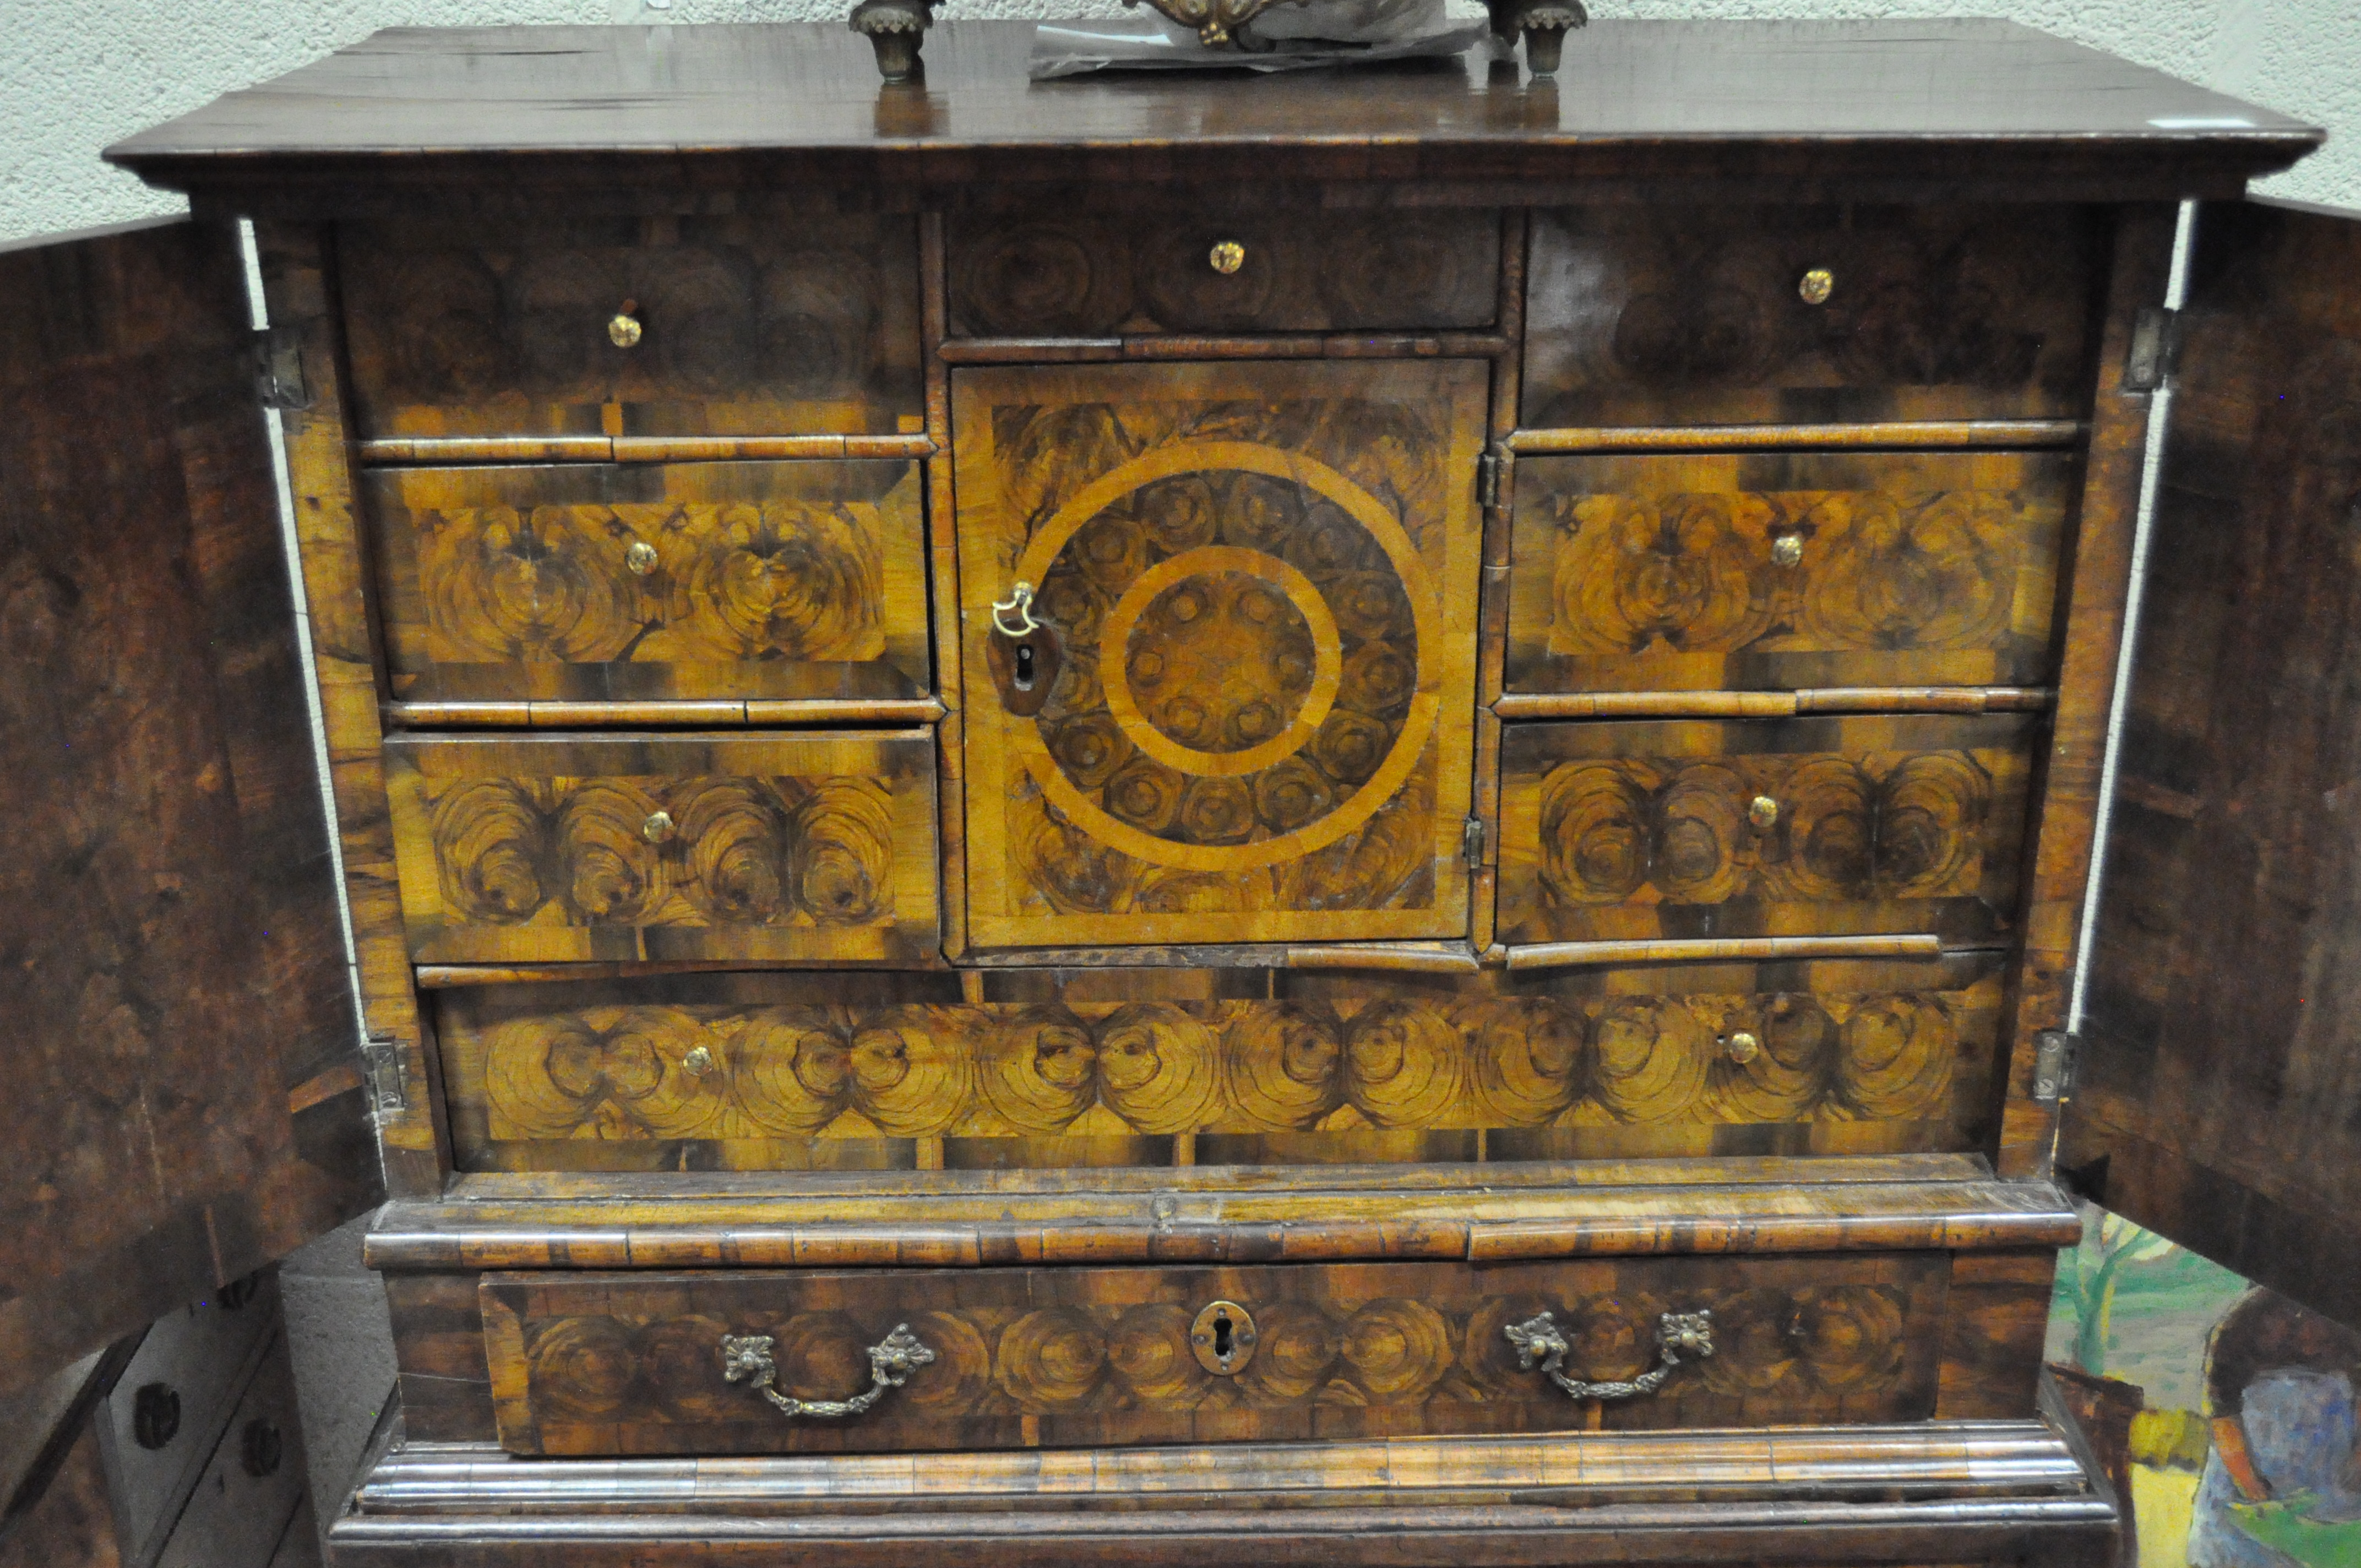 An oyster veneered cabinet on stand, 17th century style but later in date, - Image 12 of 18